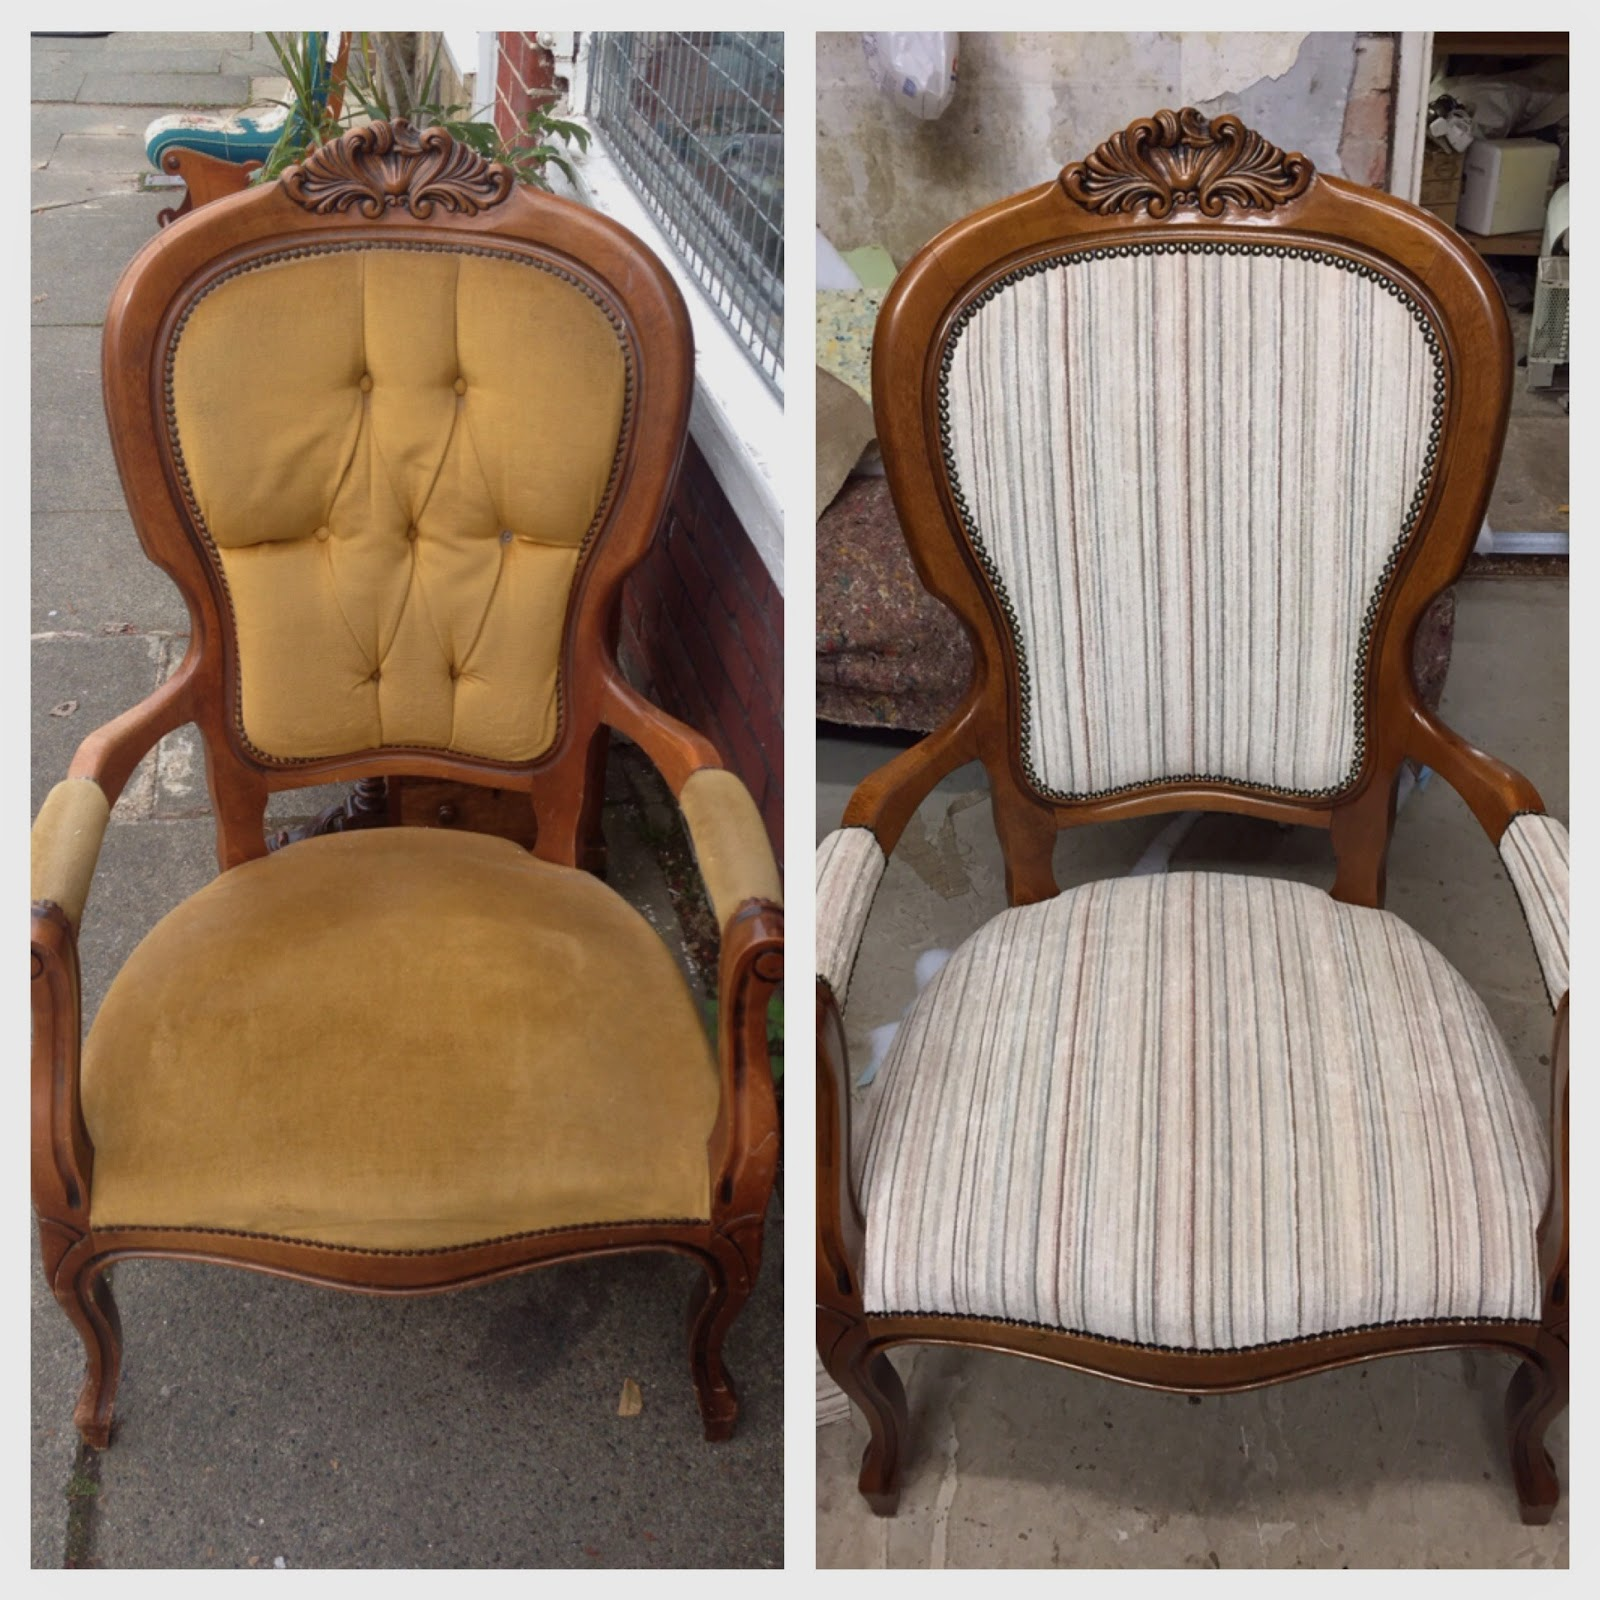 How to reupholster a louis chair - French Louis Chair Reupholster